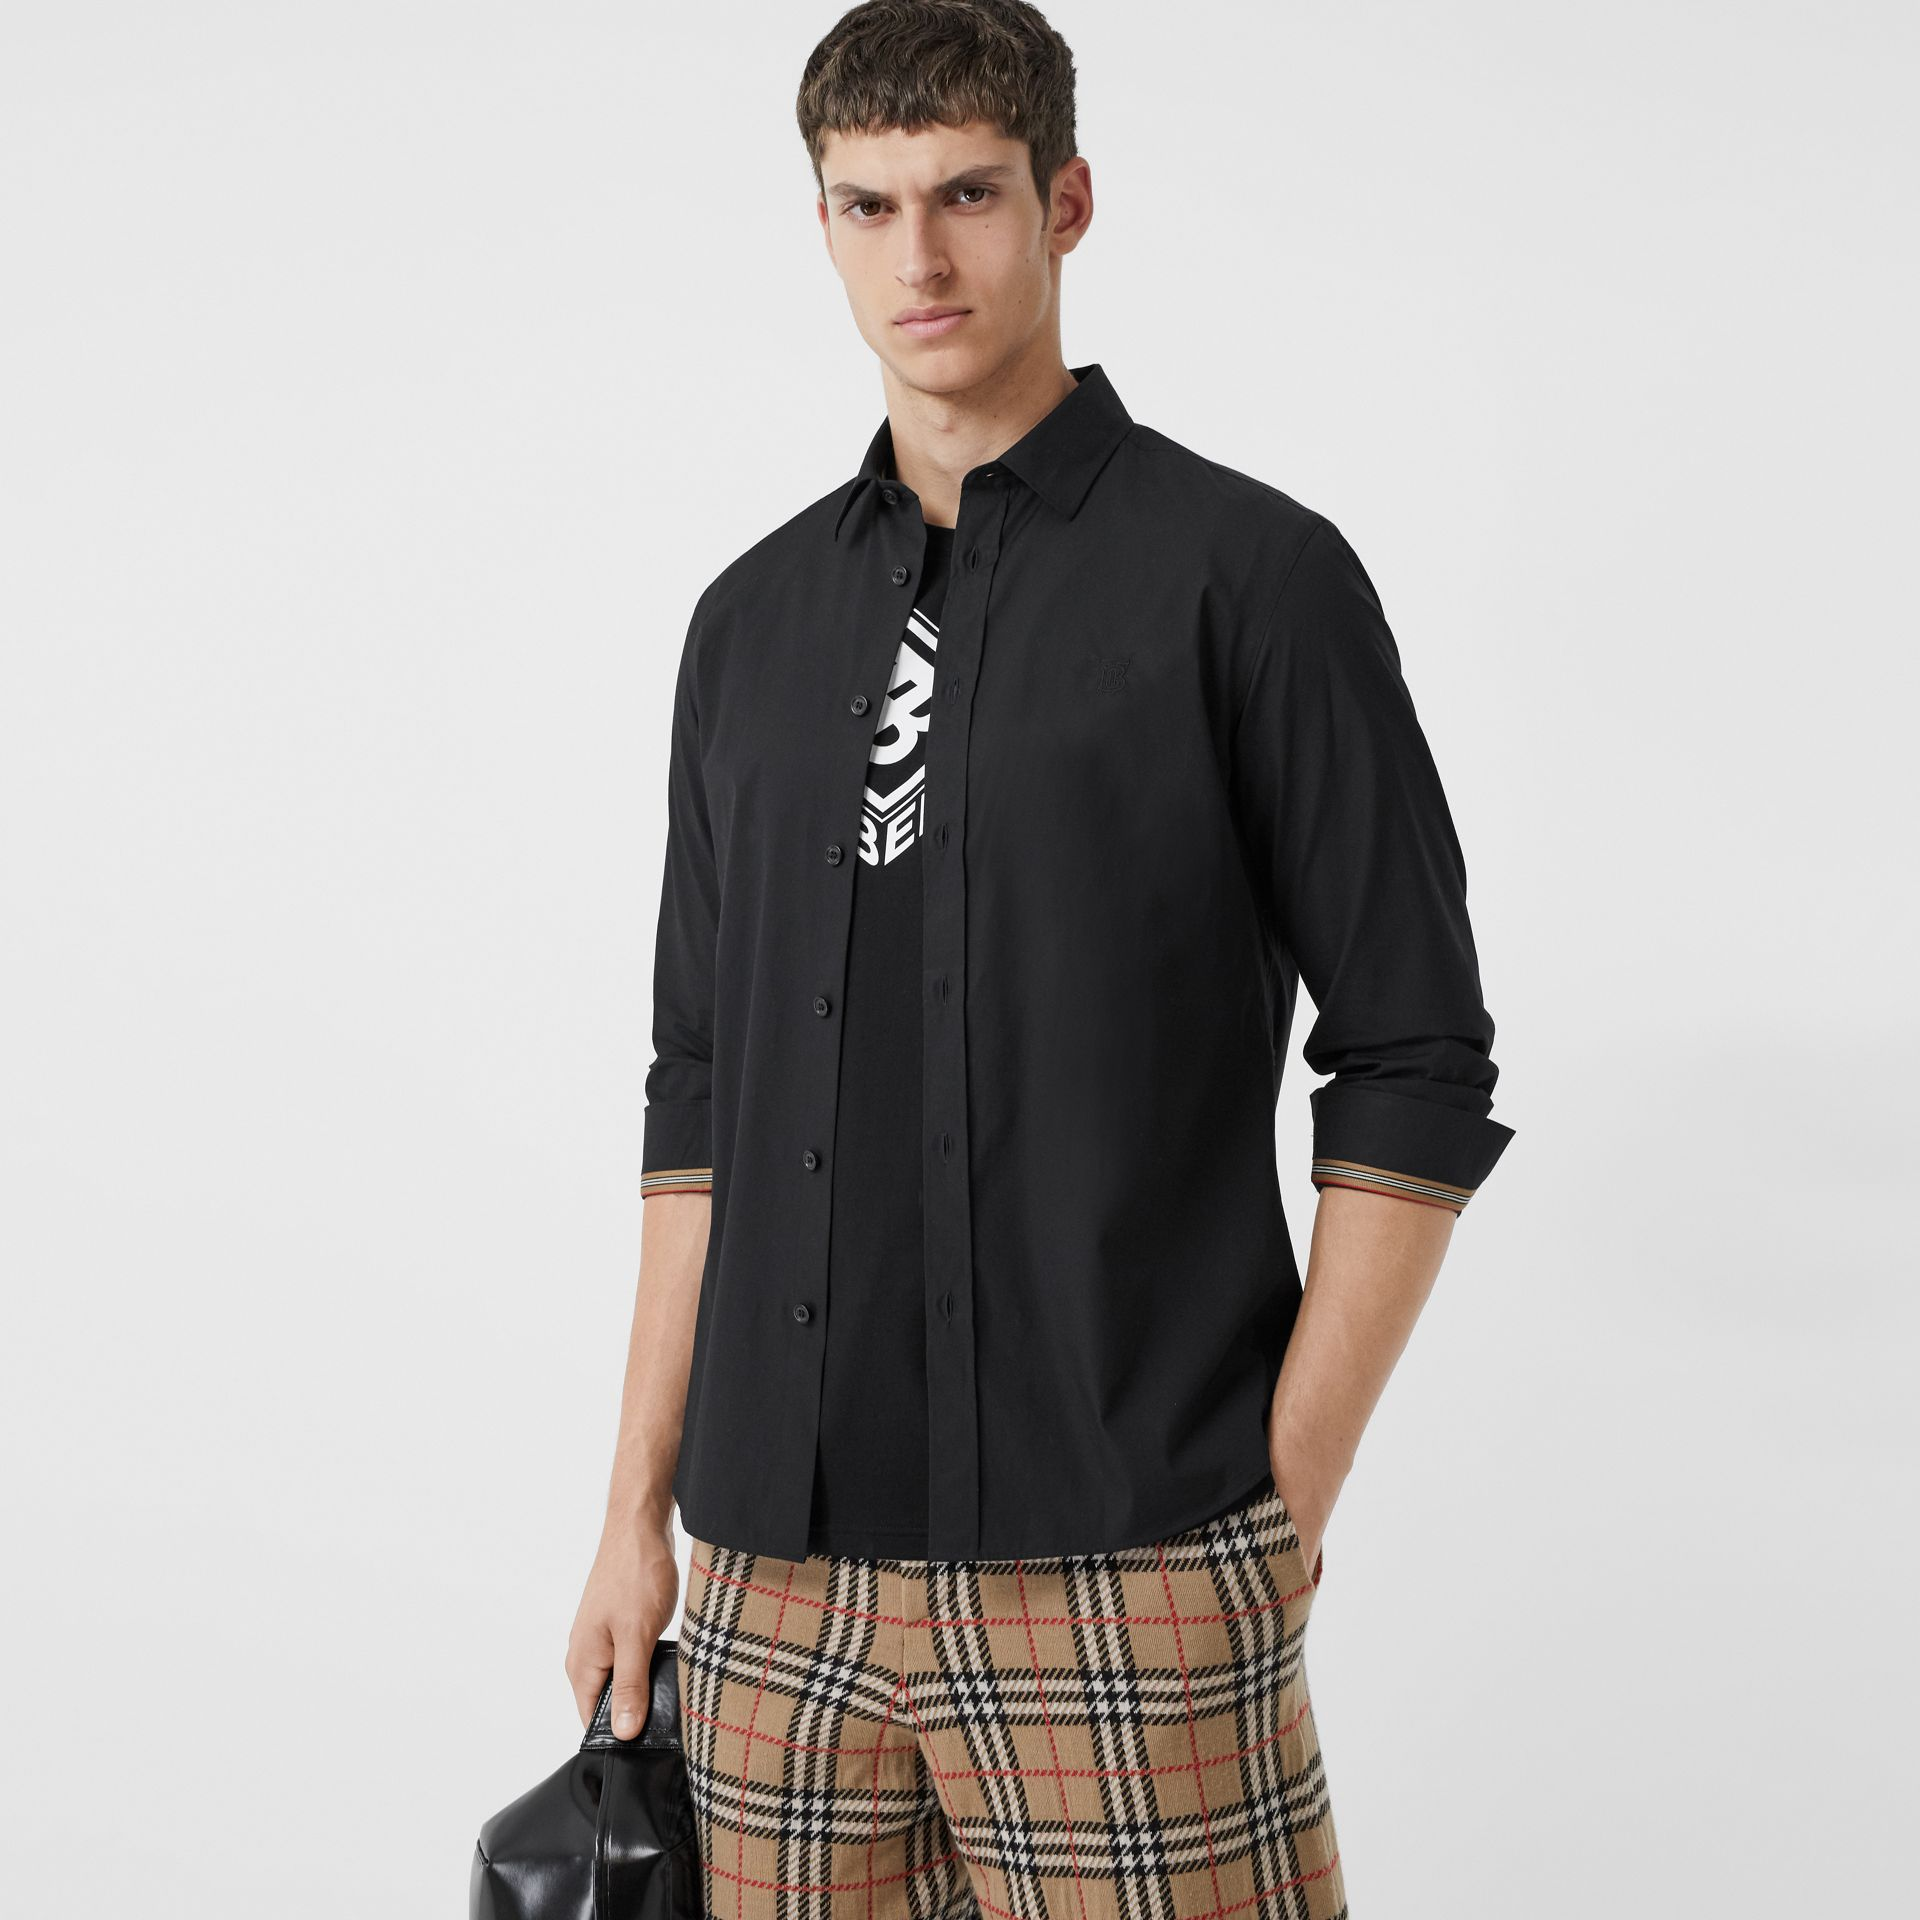 Monogram Motif Stretch Cotton Poplin Shirt in Black - Men | Burberry - gallery image 5